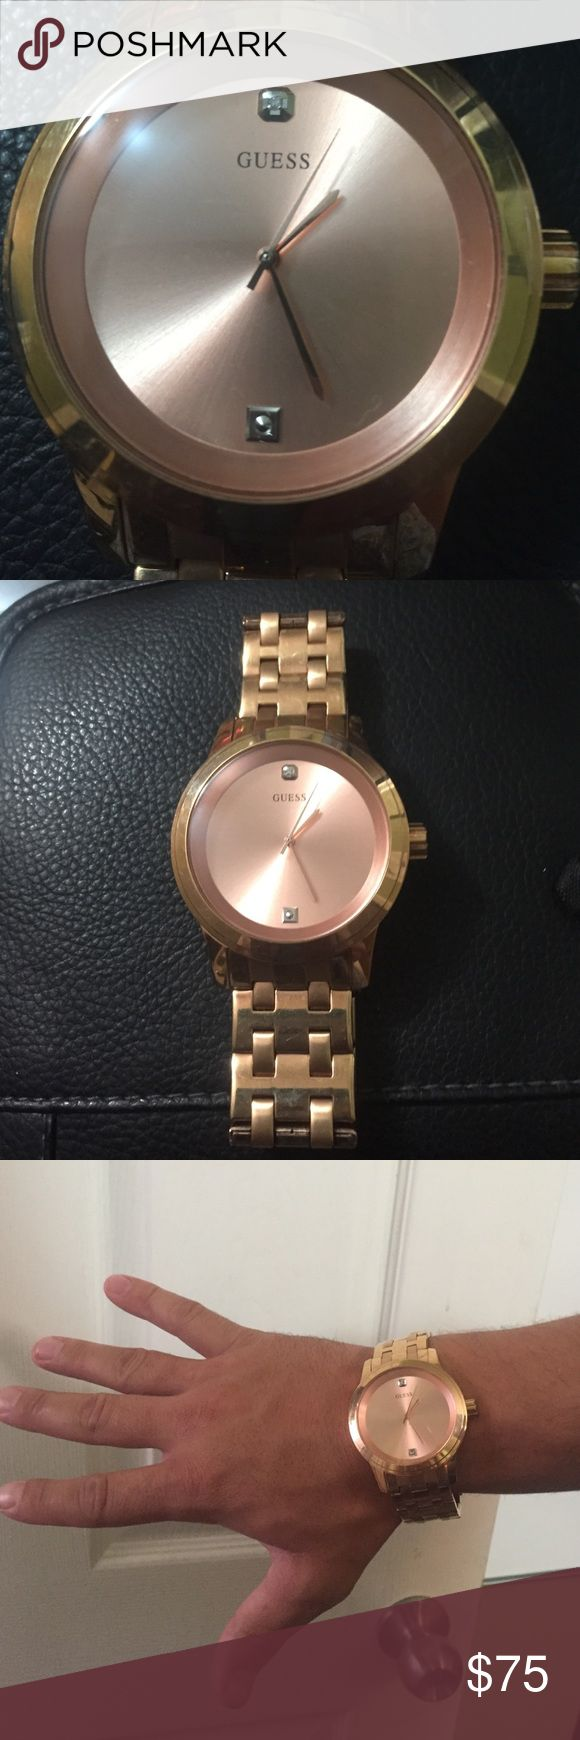 Guess men's Rose Gold watch. Used,good condition. Men's Guess Rose Gold watch ~ Good used condition. GUESS Accessories Watches